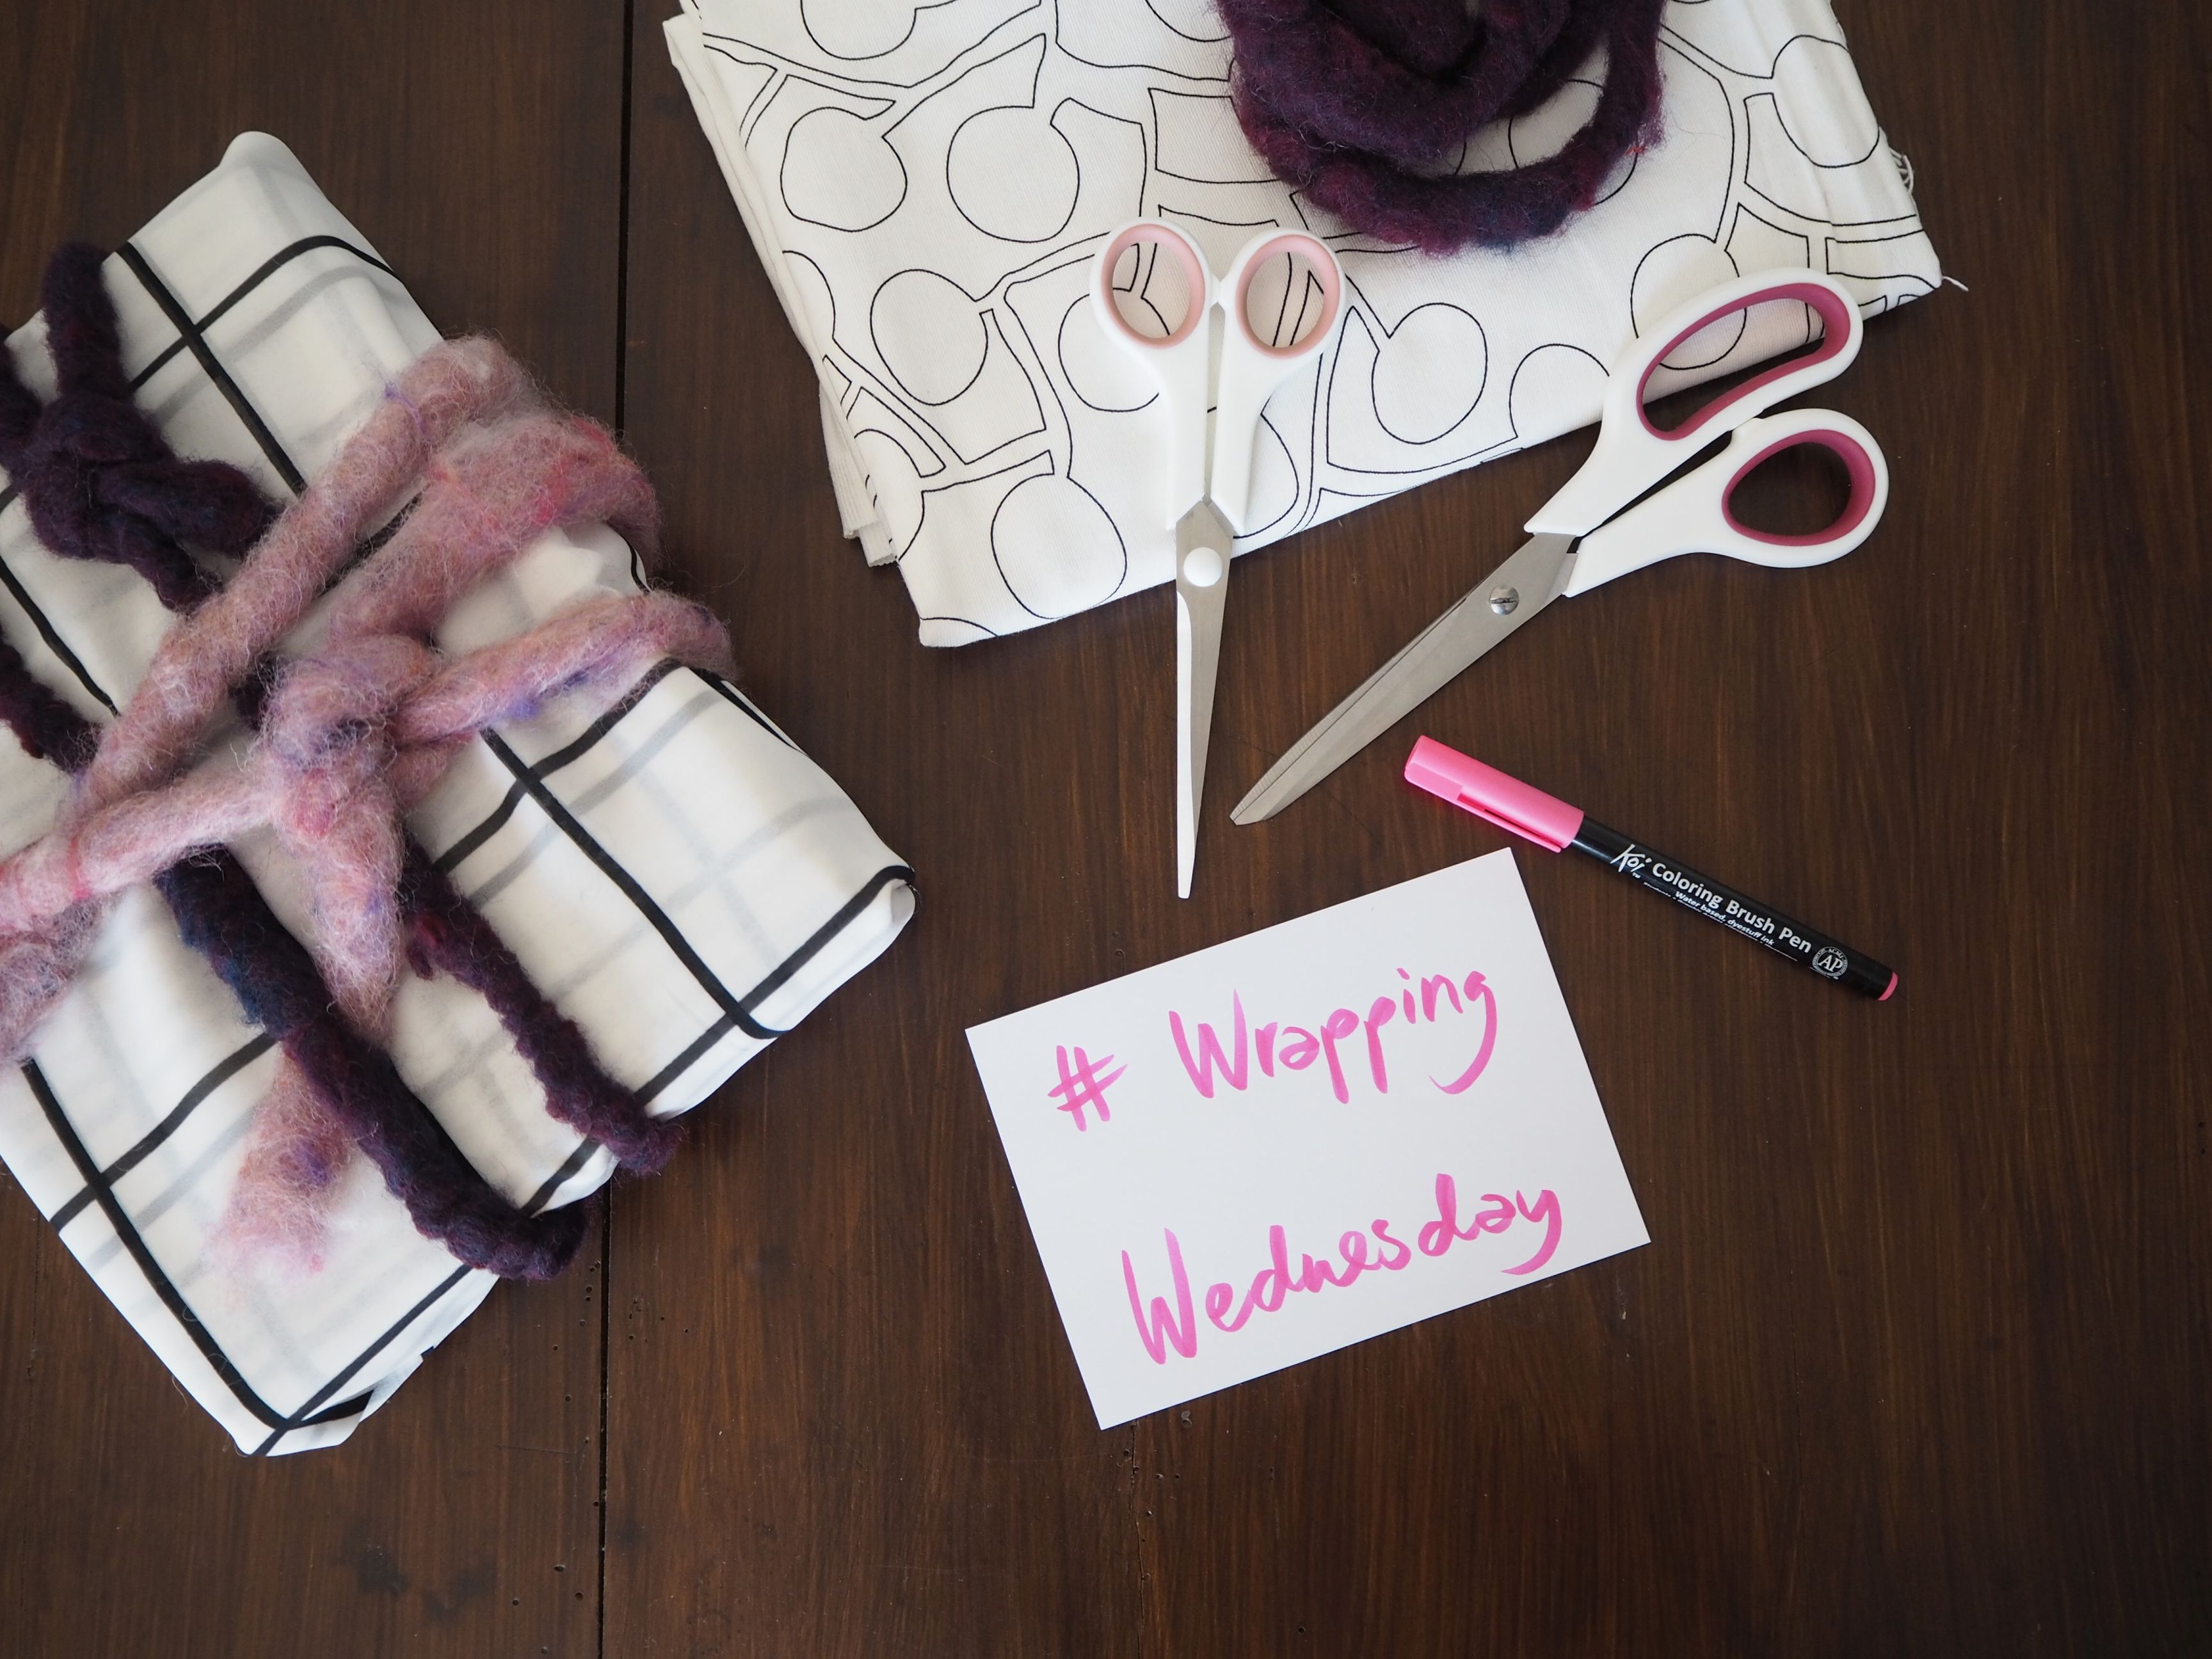 2016-08-diy-wrapping-wednesday-stoffreste-und-filz (3)